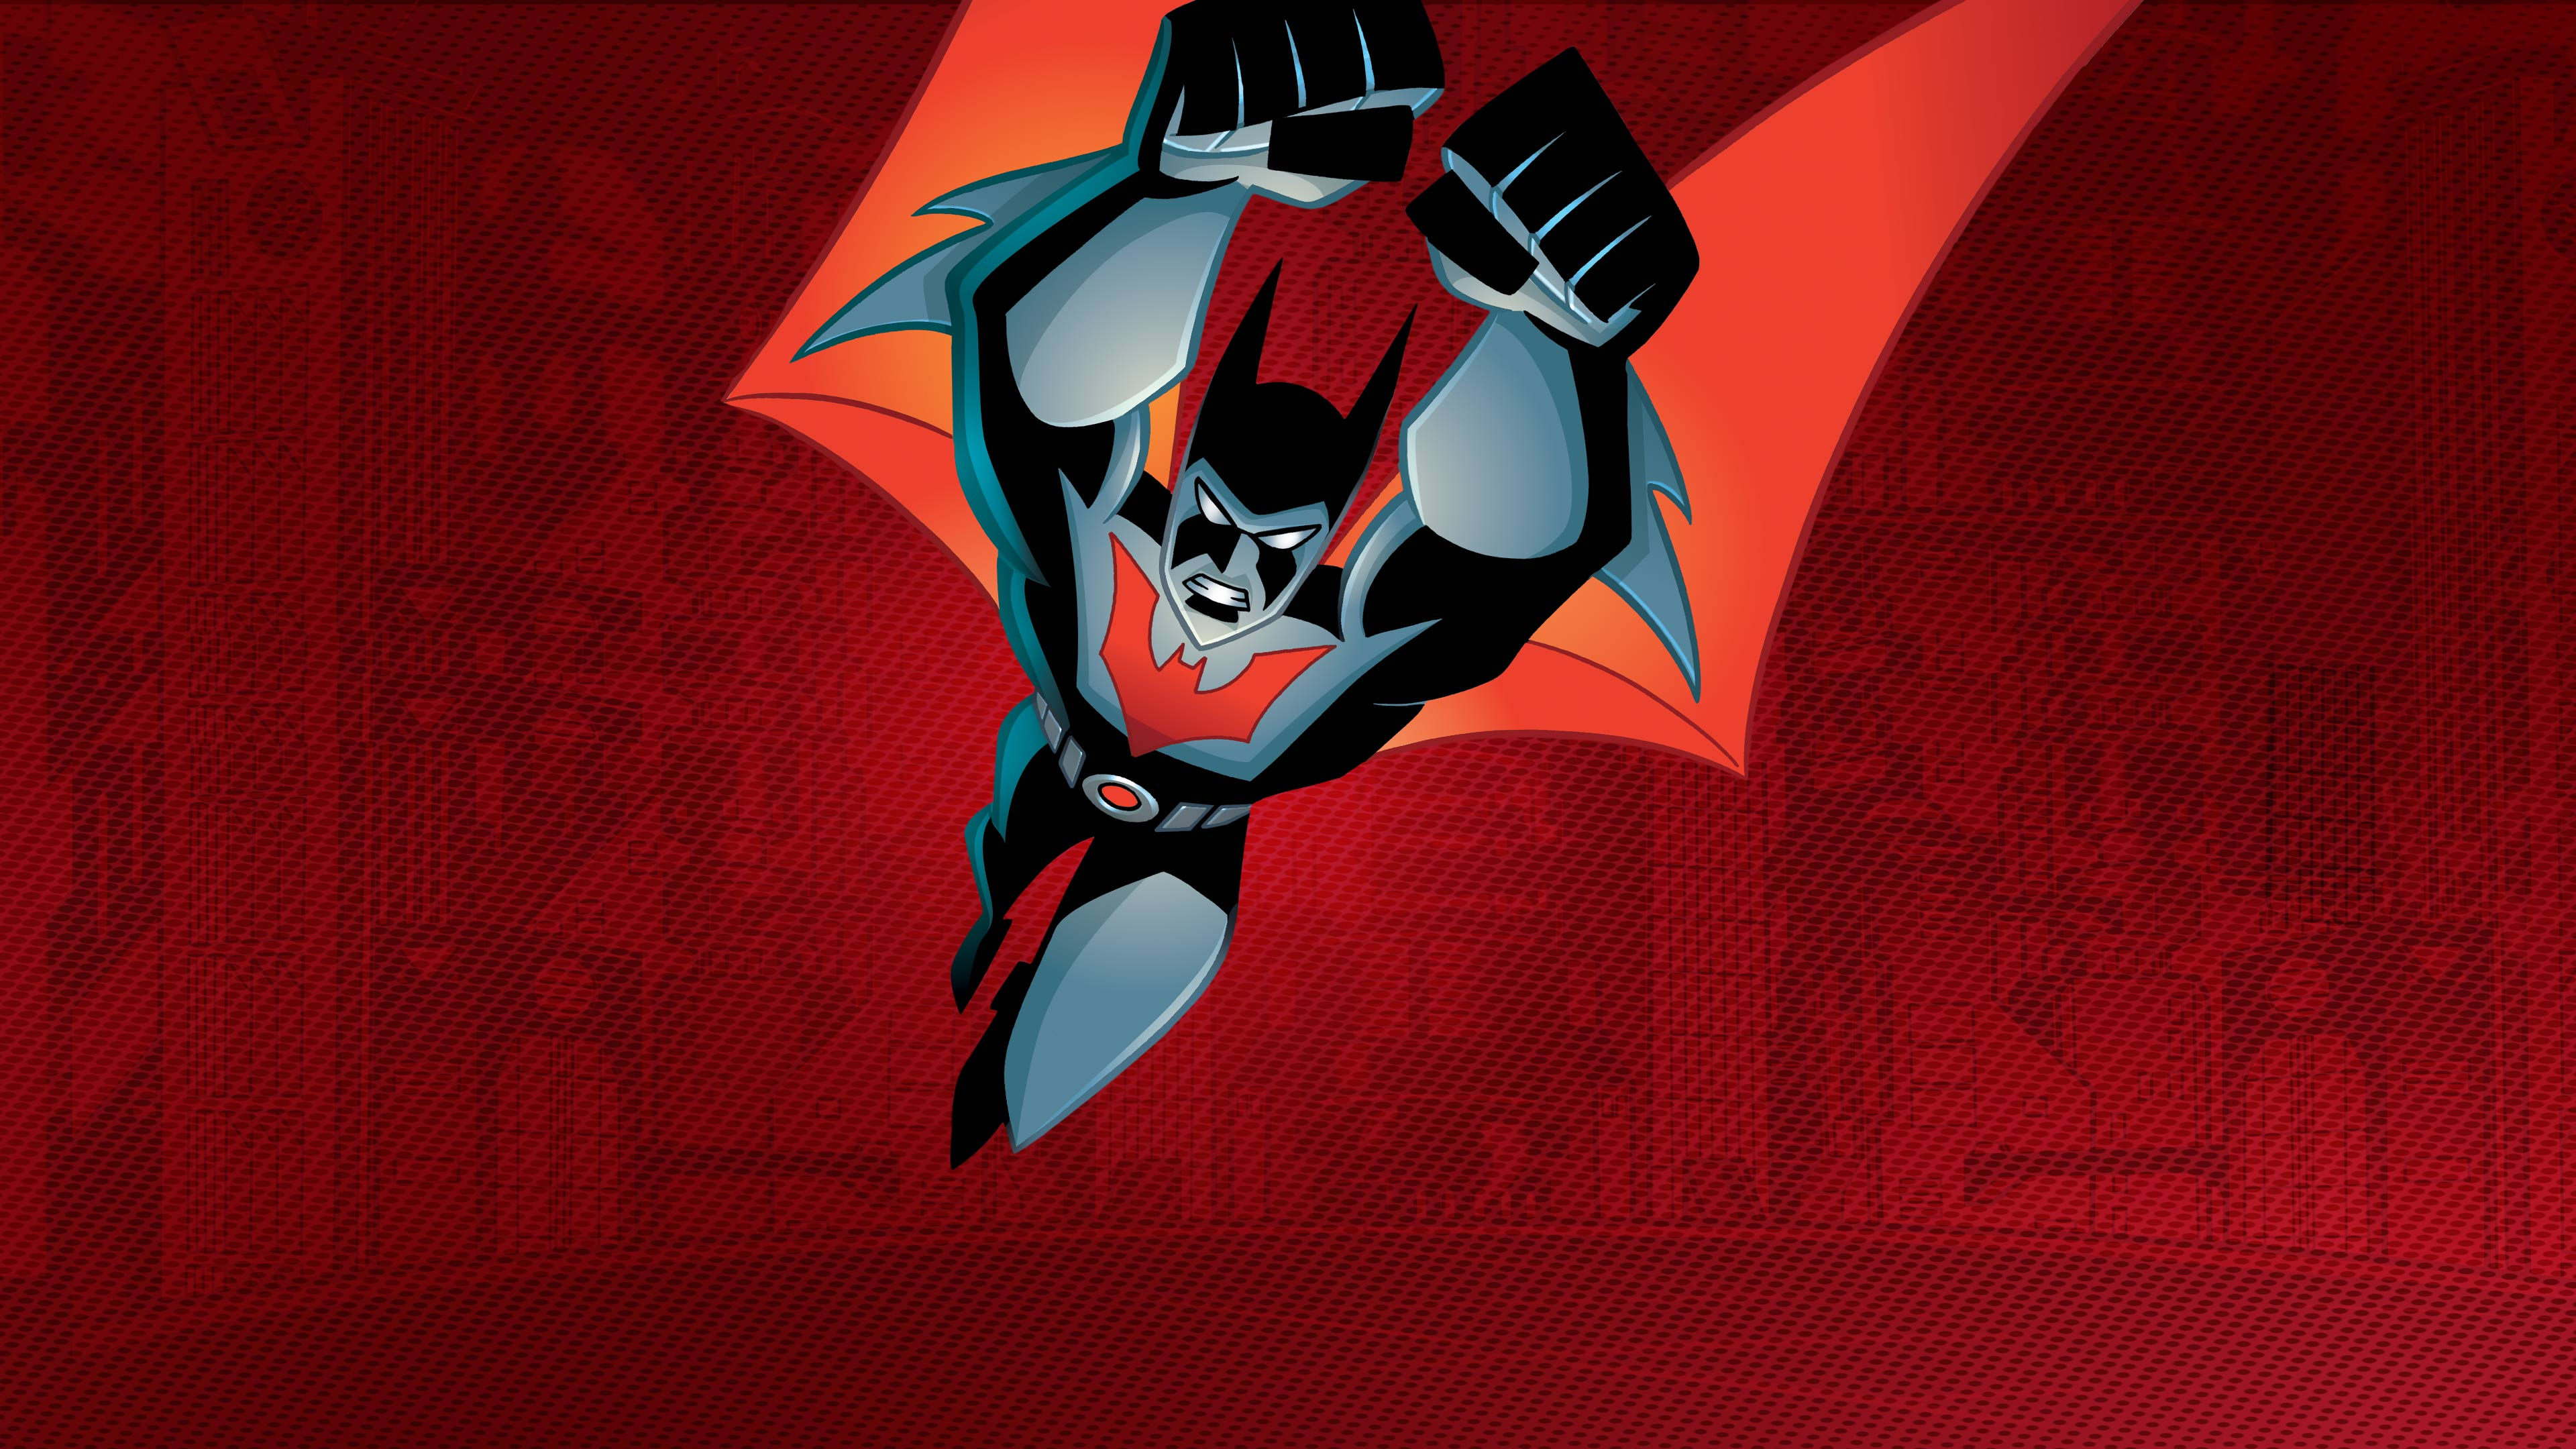 batmanbeyond_s1_hero-c_190725_v1.jpg